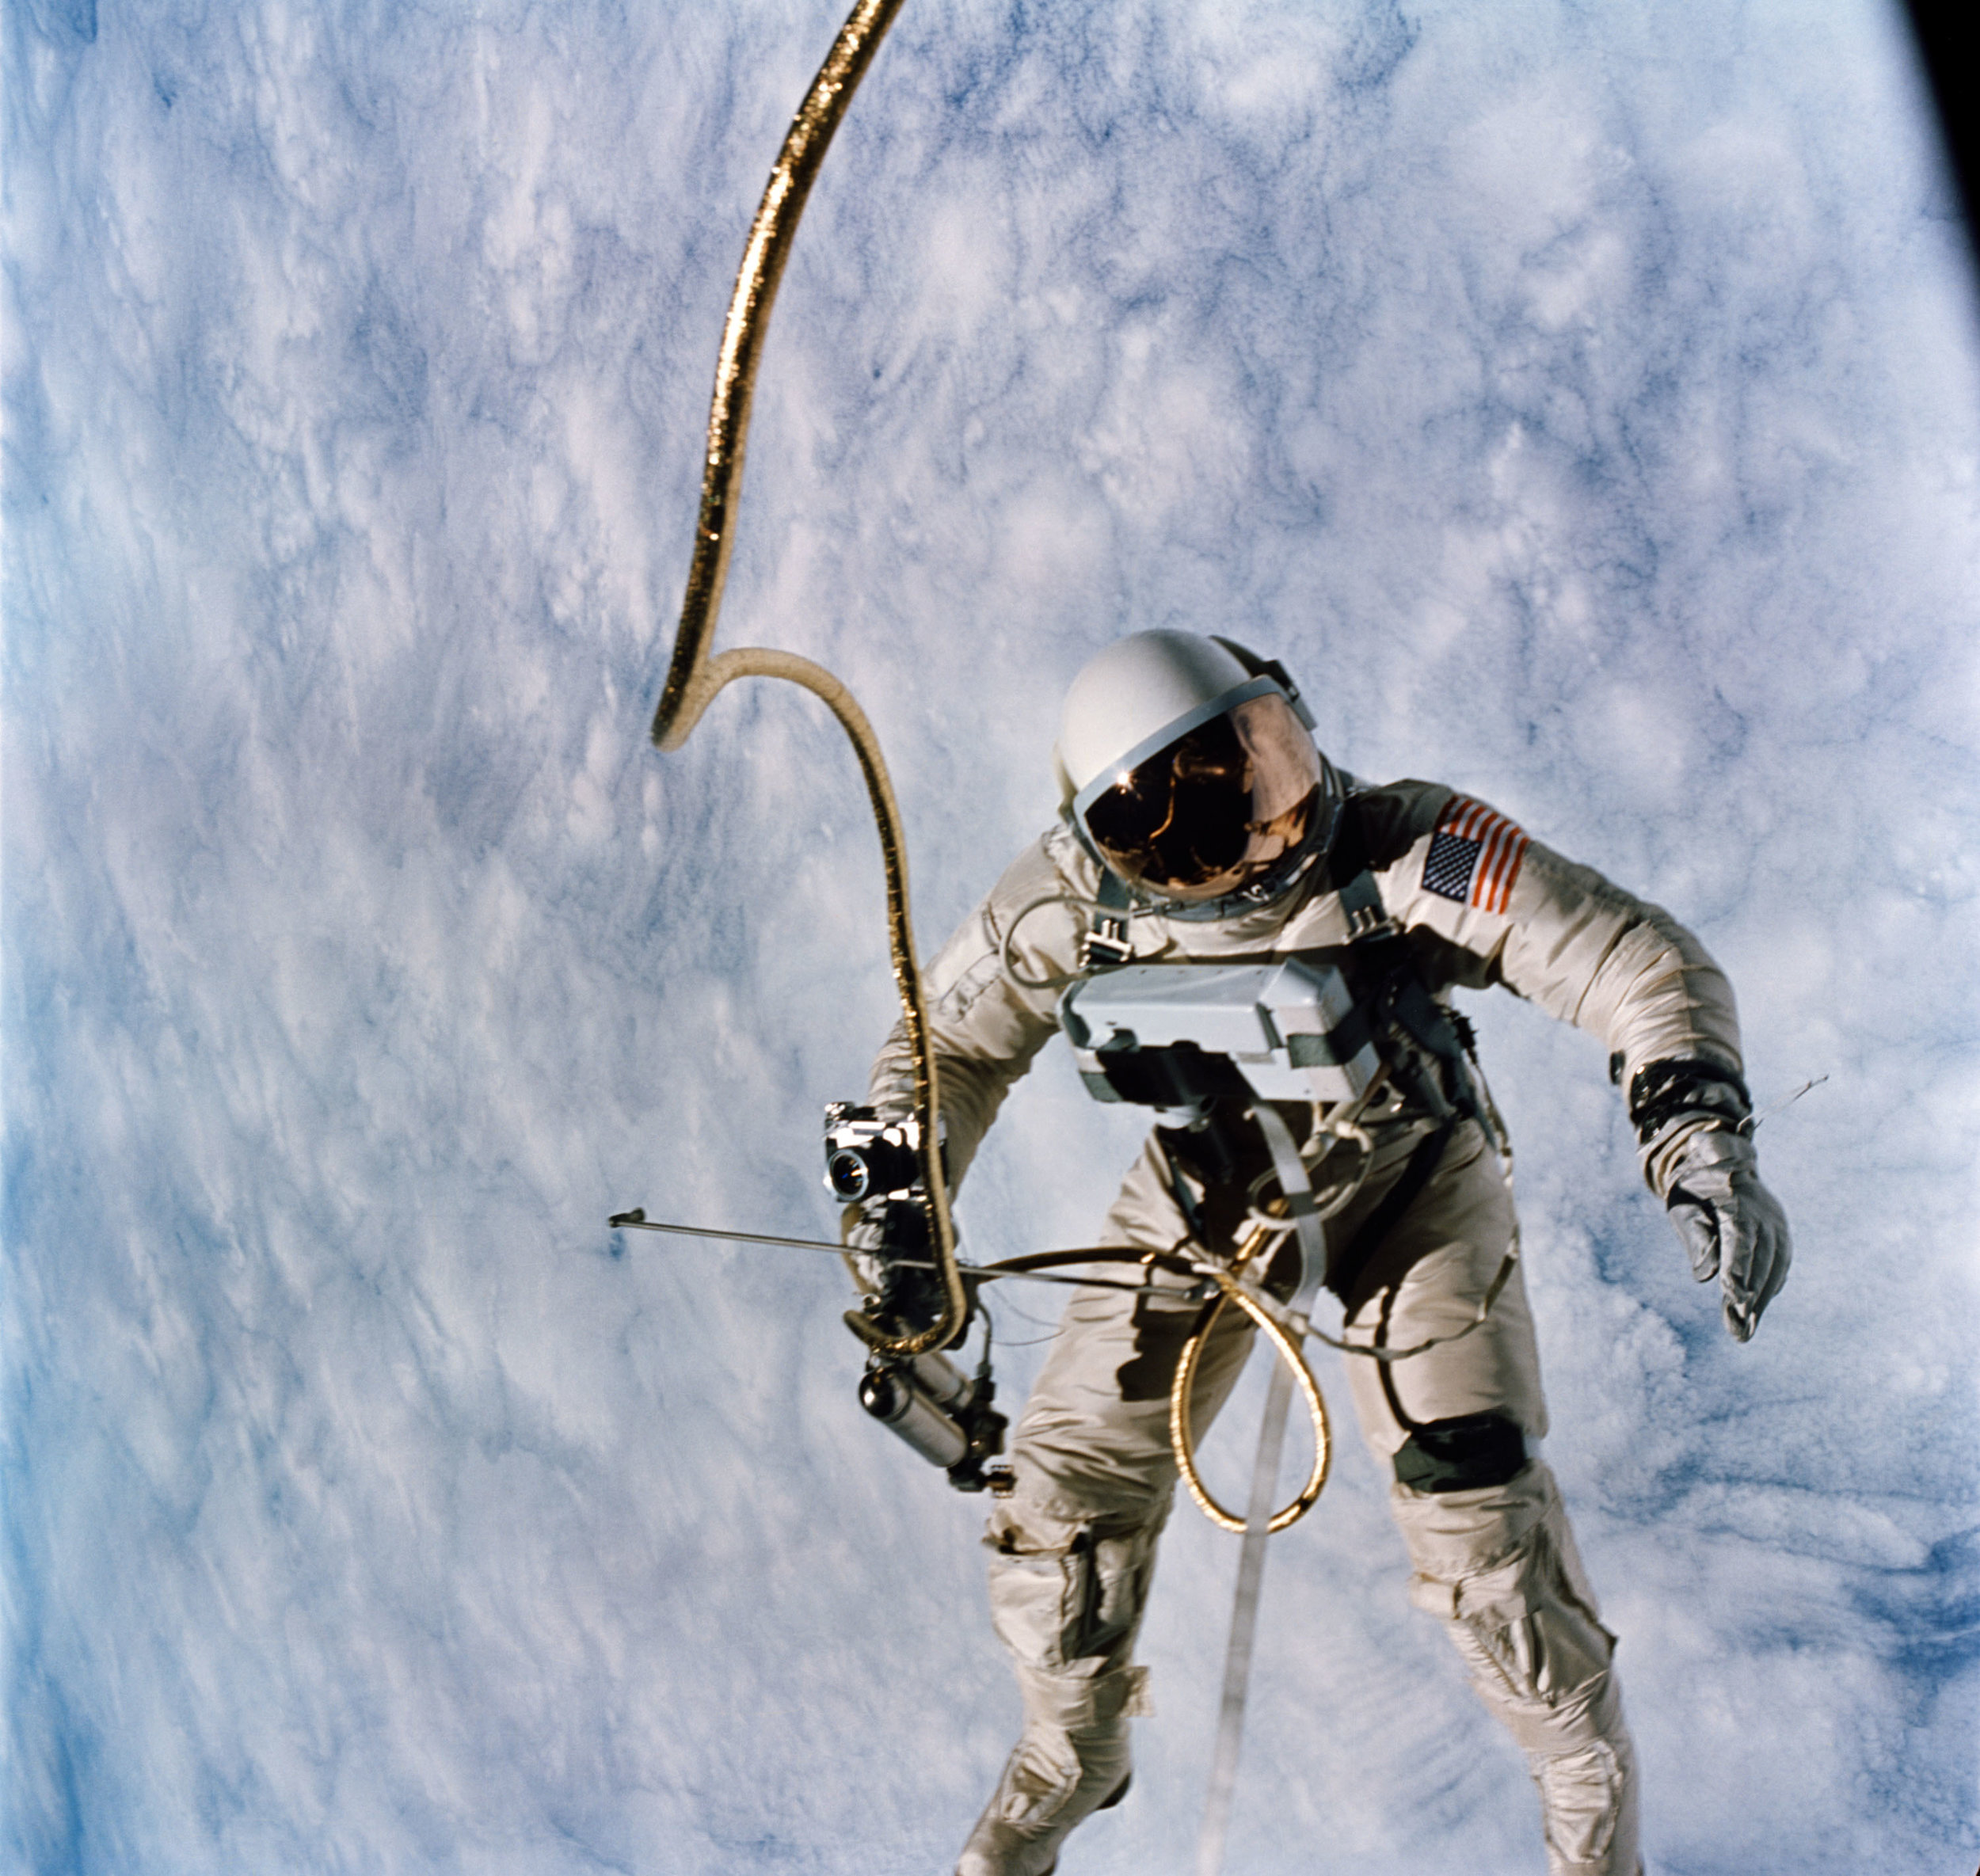 Clasping the cold-gas maneuvering gun in his right hand, and trailed by a snake-like tether, Ed White tumbles over a cloud-speckled Earth during the United States' first EVA. Photo Credit: NASA